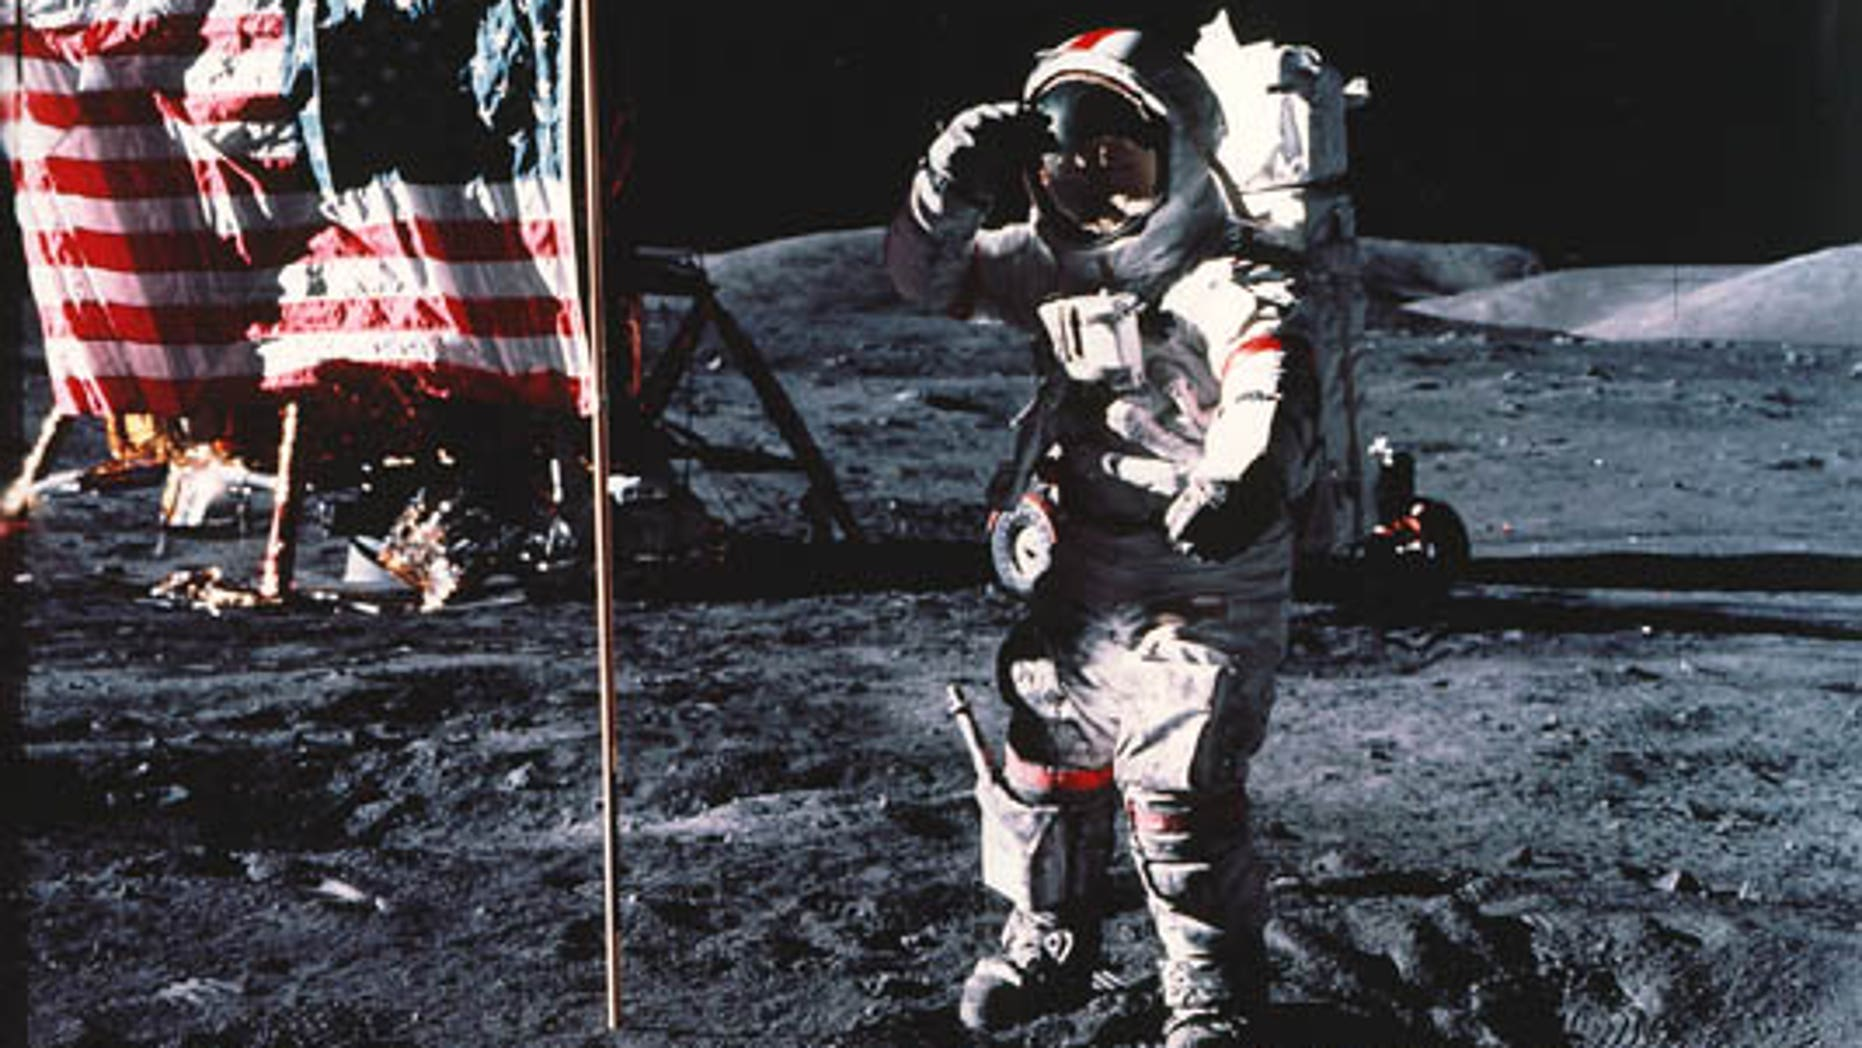 Westlake Legal Group etEXdfNBpbaeyg6UP8vN6Q Cost of 2024 Moon landing is still a mystery Space.com Mike Wall fox-news/science/air-and-space/spaceflight fox-news/science/air-and-space/moon fnc/science fnc article 5397cc3d-0588-5628-9393-150293f06d3e